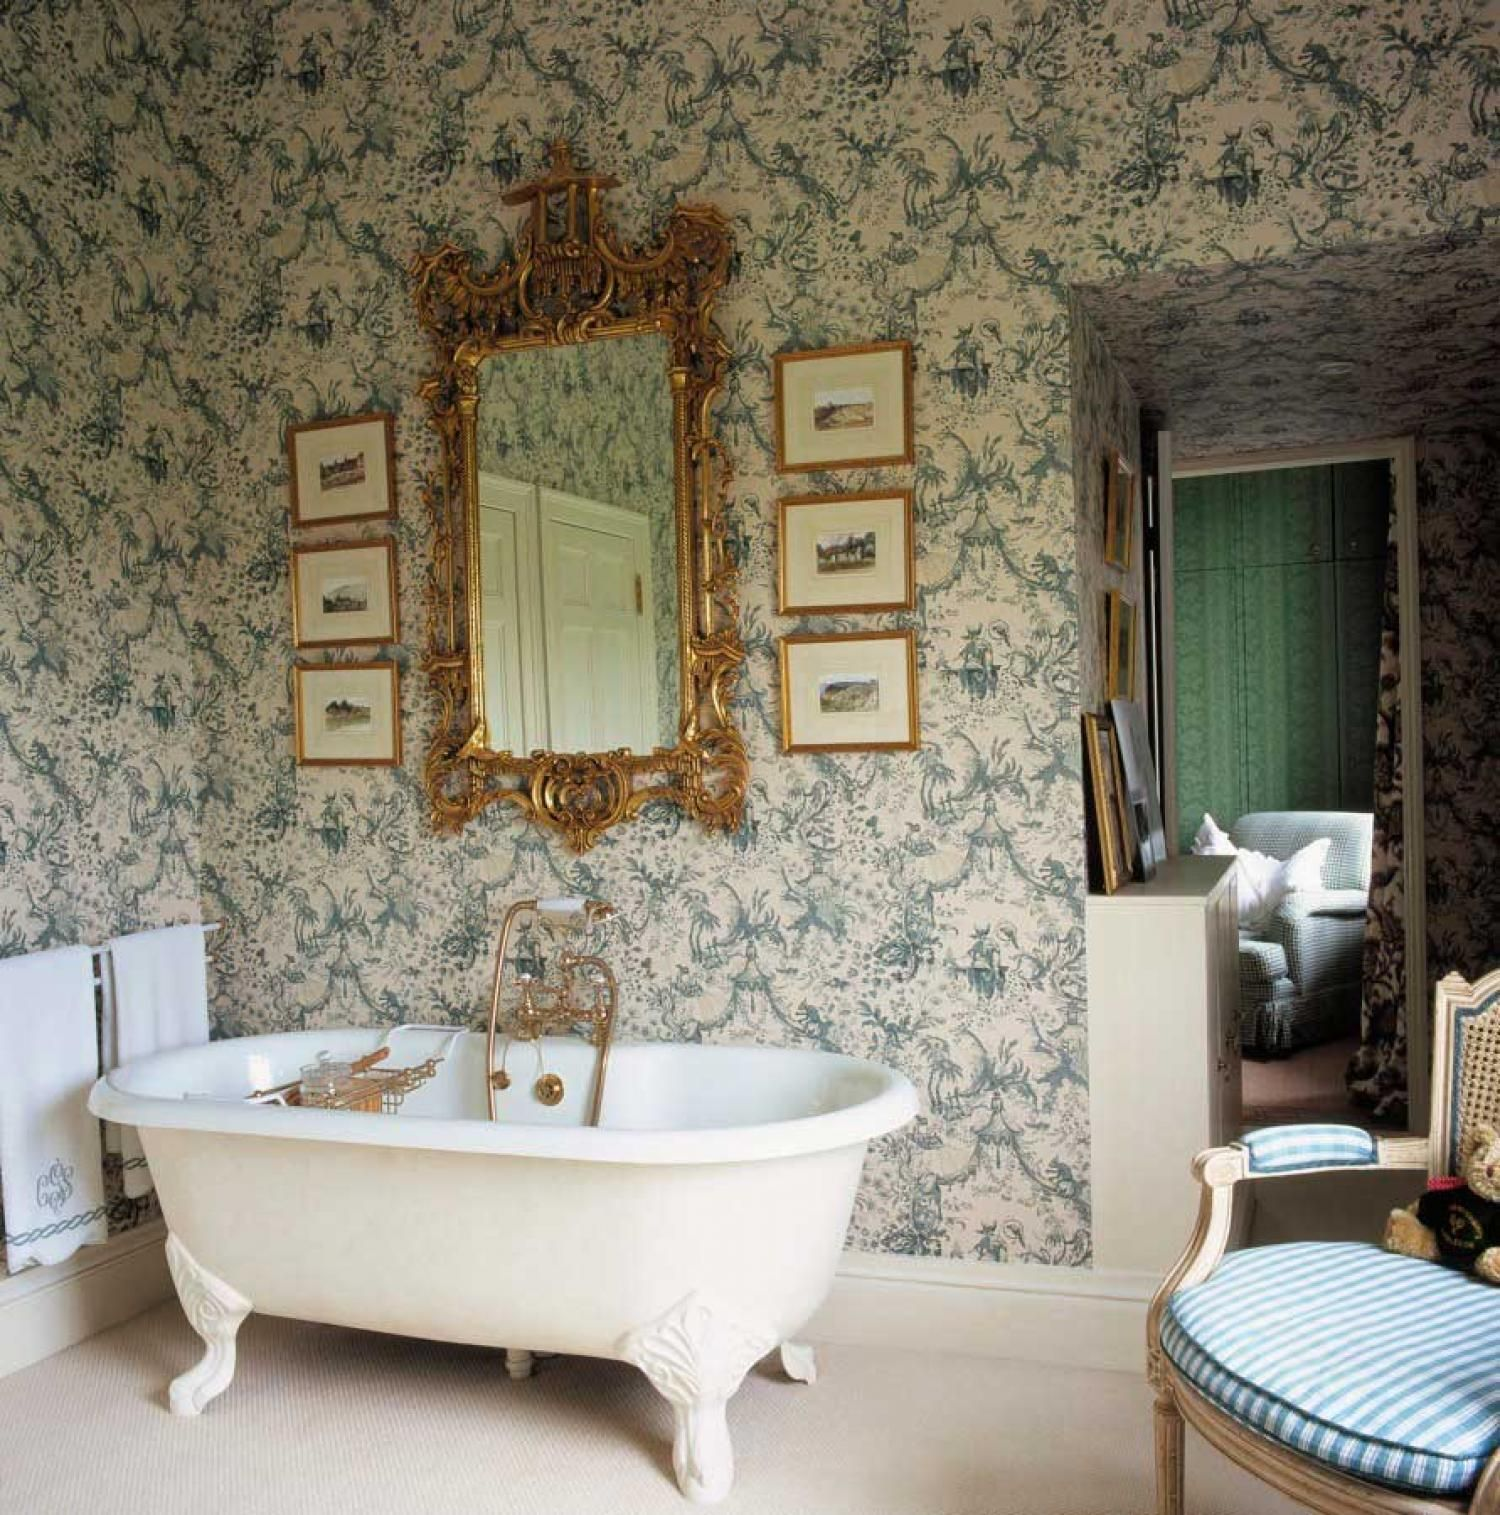 15 Wondrous Victorian Bathroom Design Ideas Victorian Interior Design Victorian Style Bathroom Best Bathroom Designs